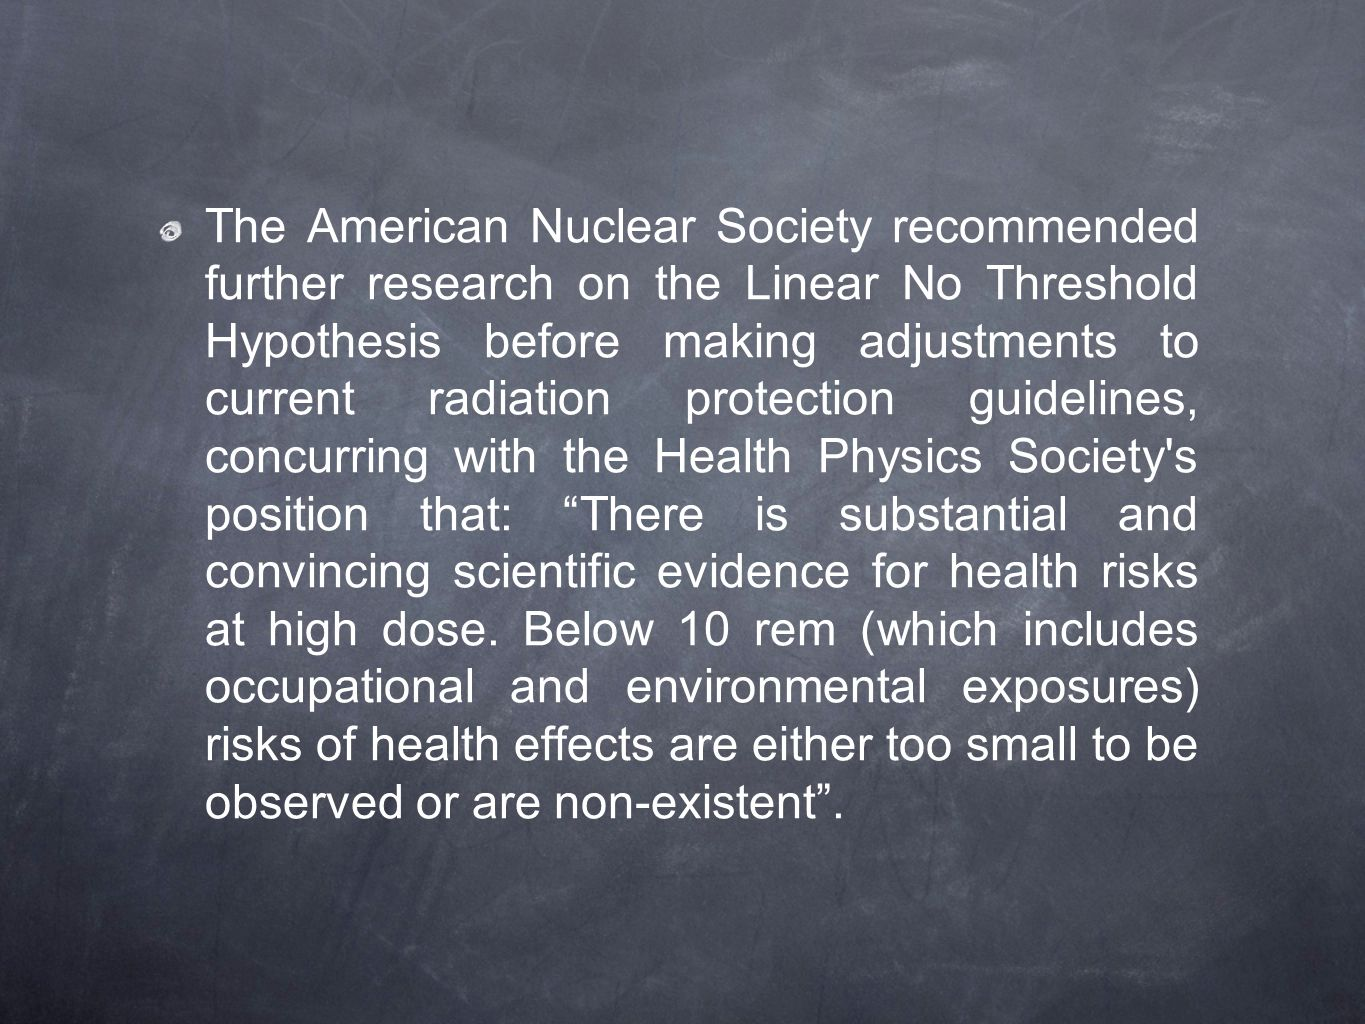 The American Nuclear Society recommended further research on the Linear No Threshold Hypothesis before making adjustments to current radiation protection guidelines, concurring with the Health Physics Society s position that: There is substantial and convincing scientific evidence for health risks at high dose.